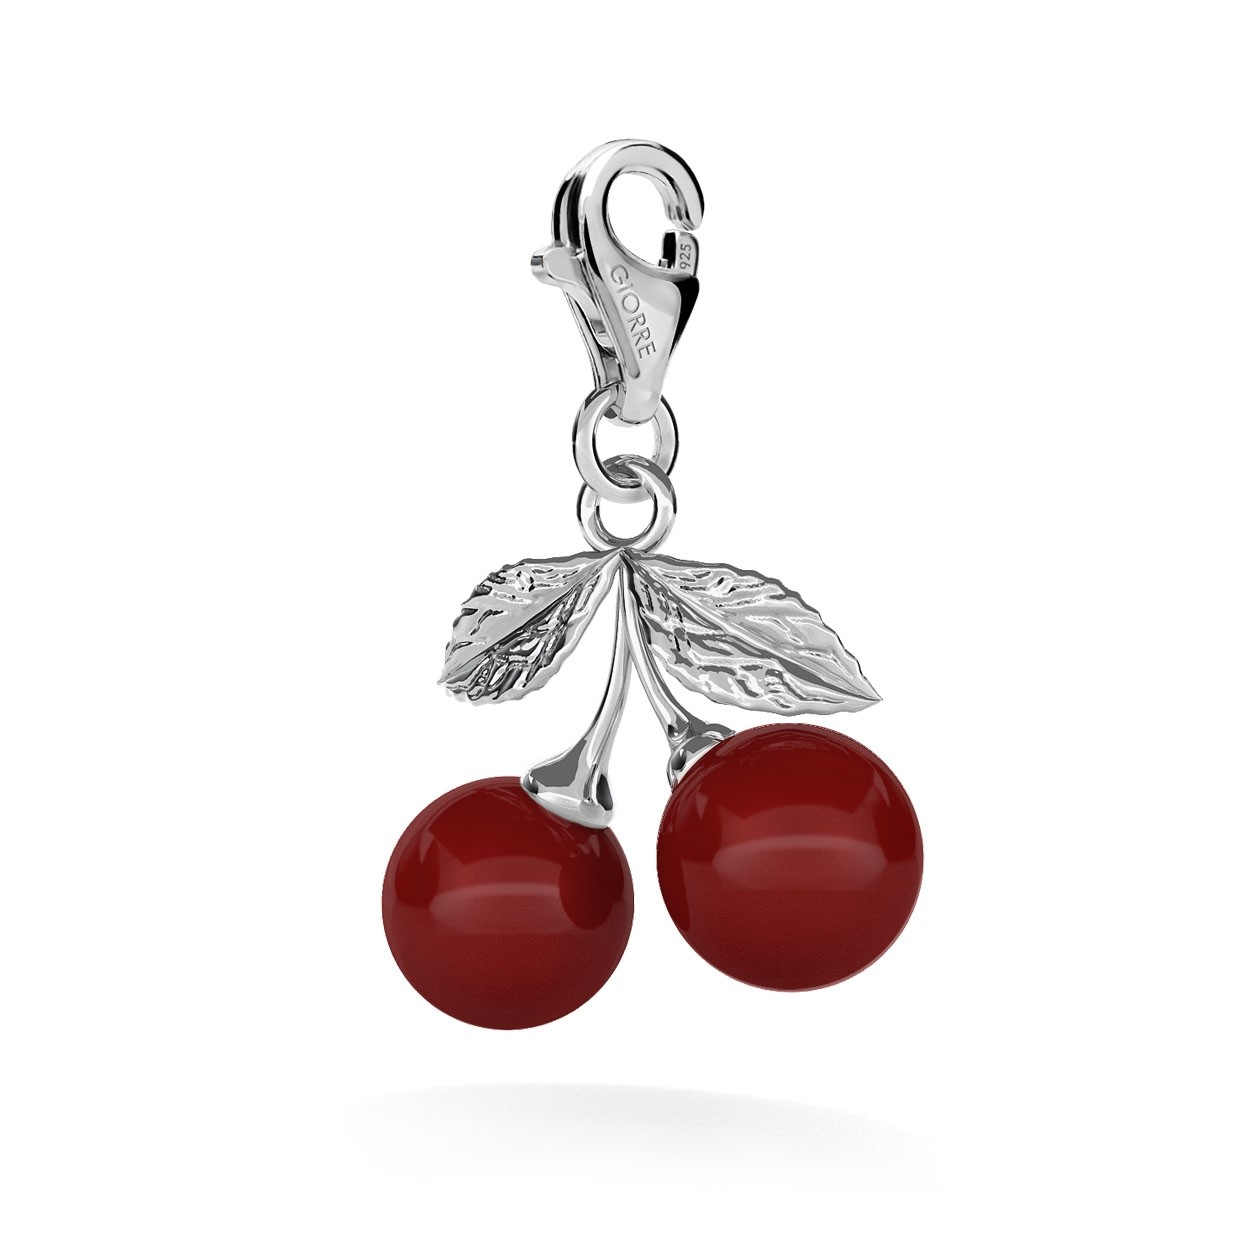 CHARM 33, CHERRY, SILVER 925, RHODIUM OR GOLD PLATED